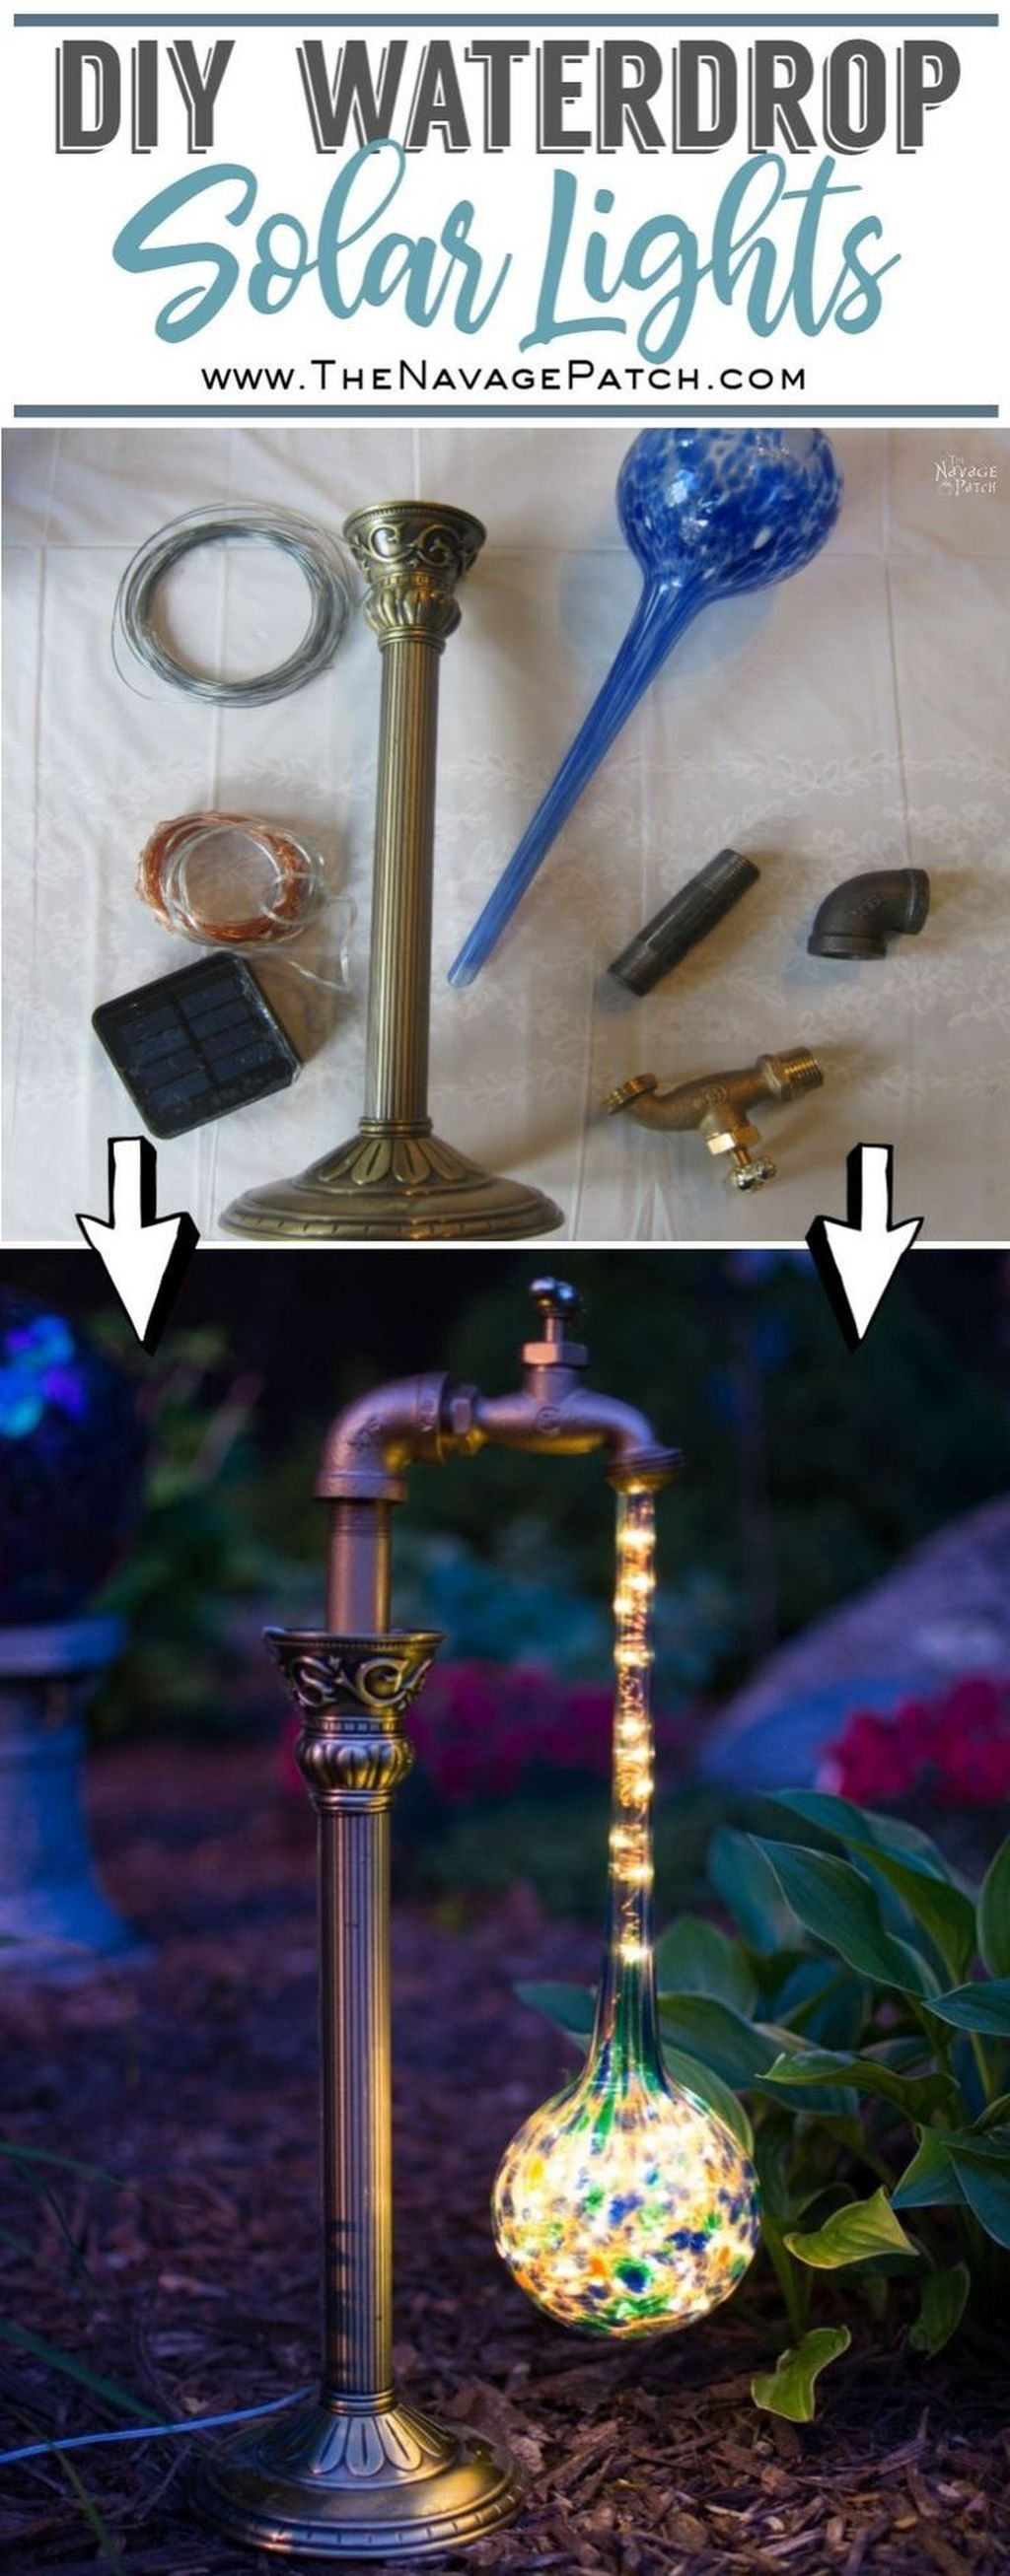 Popular Diy Backyard Projects Ideas For Your Pets 10